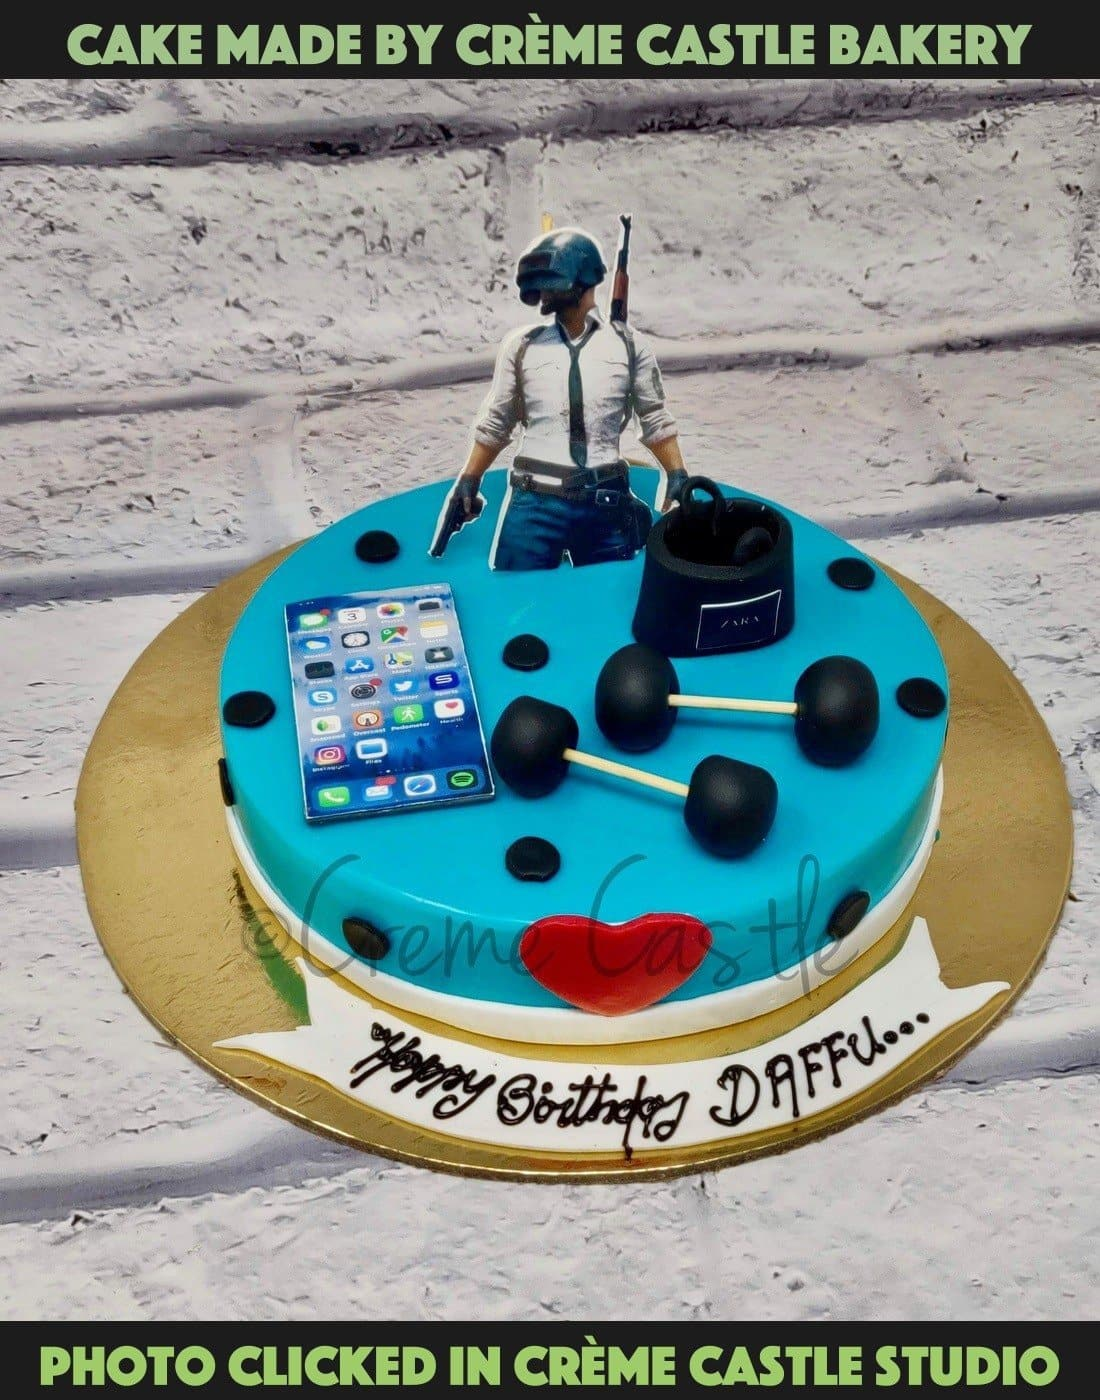 A cake for someone who loves two things Pubg game and gumming. A cake personifying the same